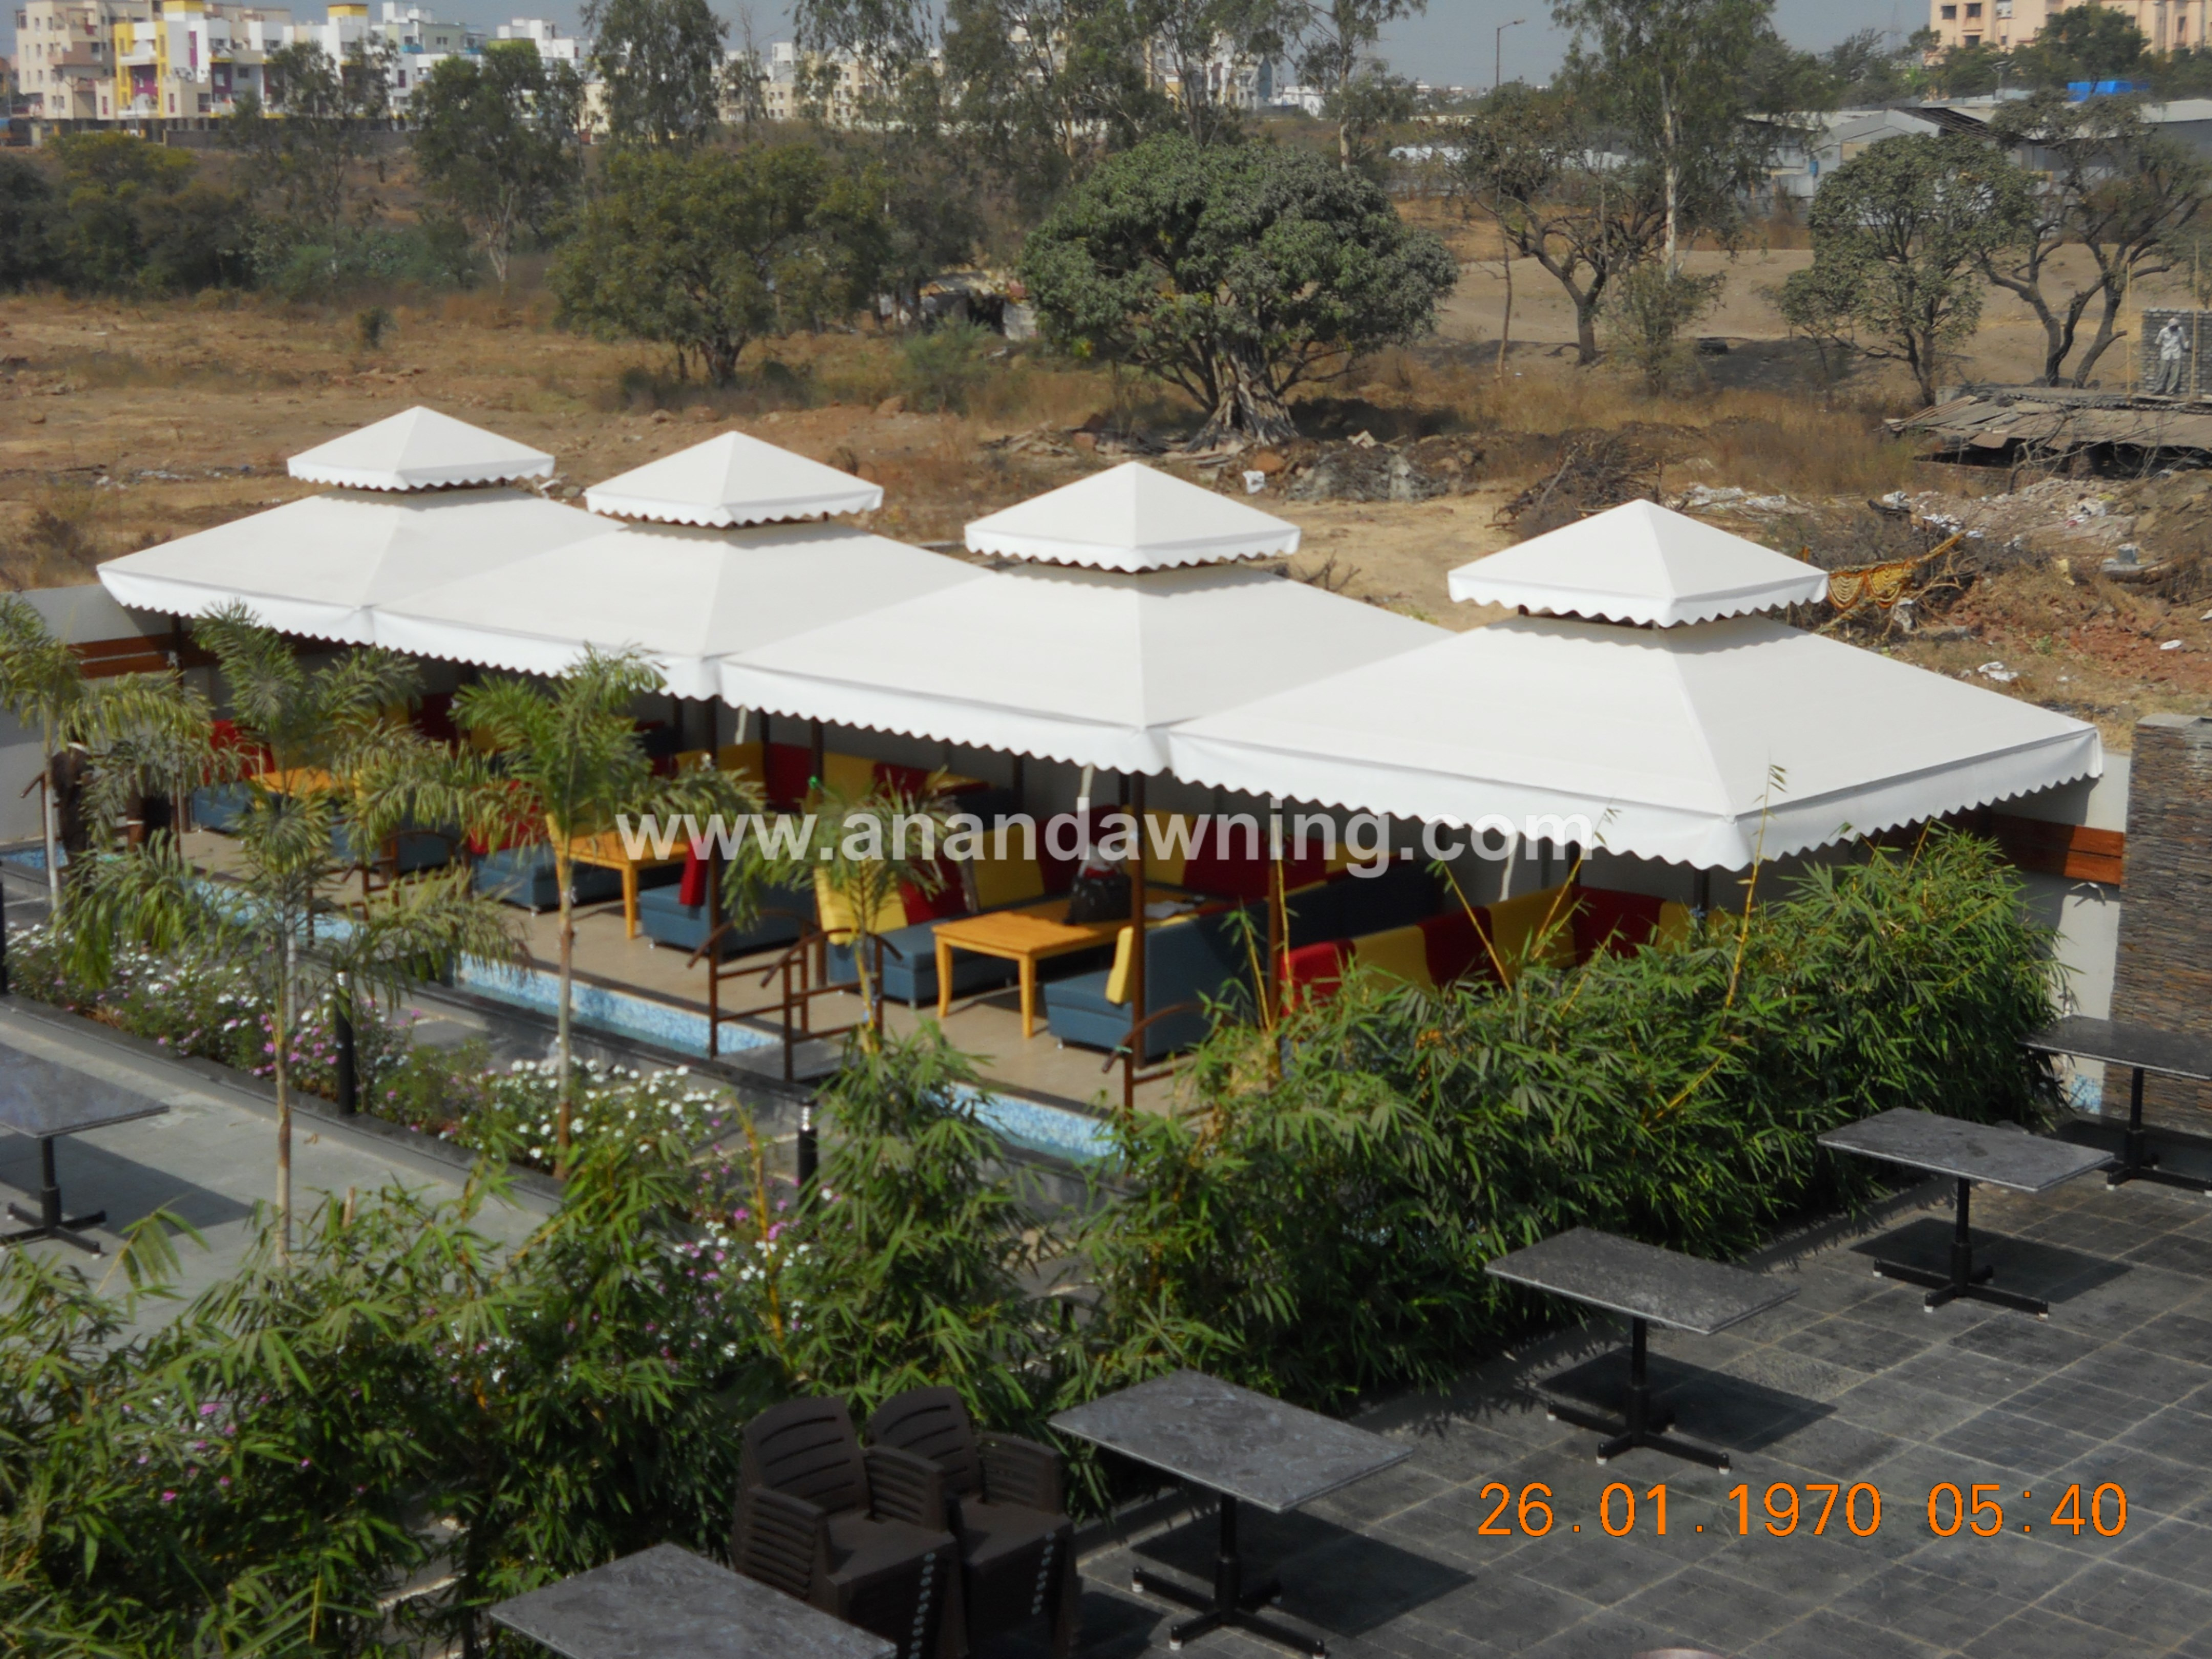 We offer superior quality OutdoorGazebos of various designs and styles for outdoor sitting arrangements. Tent are perfect for outdoor activities like picnics, camps, outdoor parties and functions. These furniture are in high demand amongst our clients as these are highly functional and cost effective solutions for utilizing outdoor spaces. We supply these Tents in vibrant colors and design patterns as per the requirements and preferences of our clients.  Features Compact design Flawless finish Dimensional accuracy